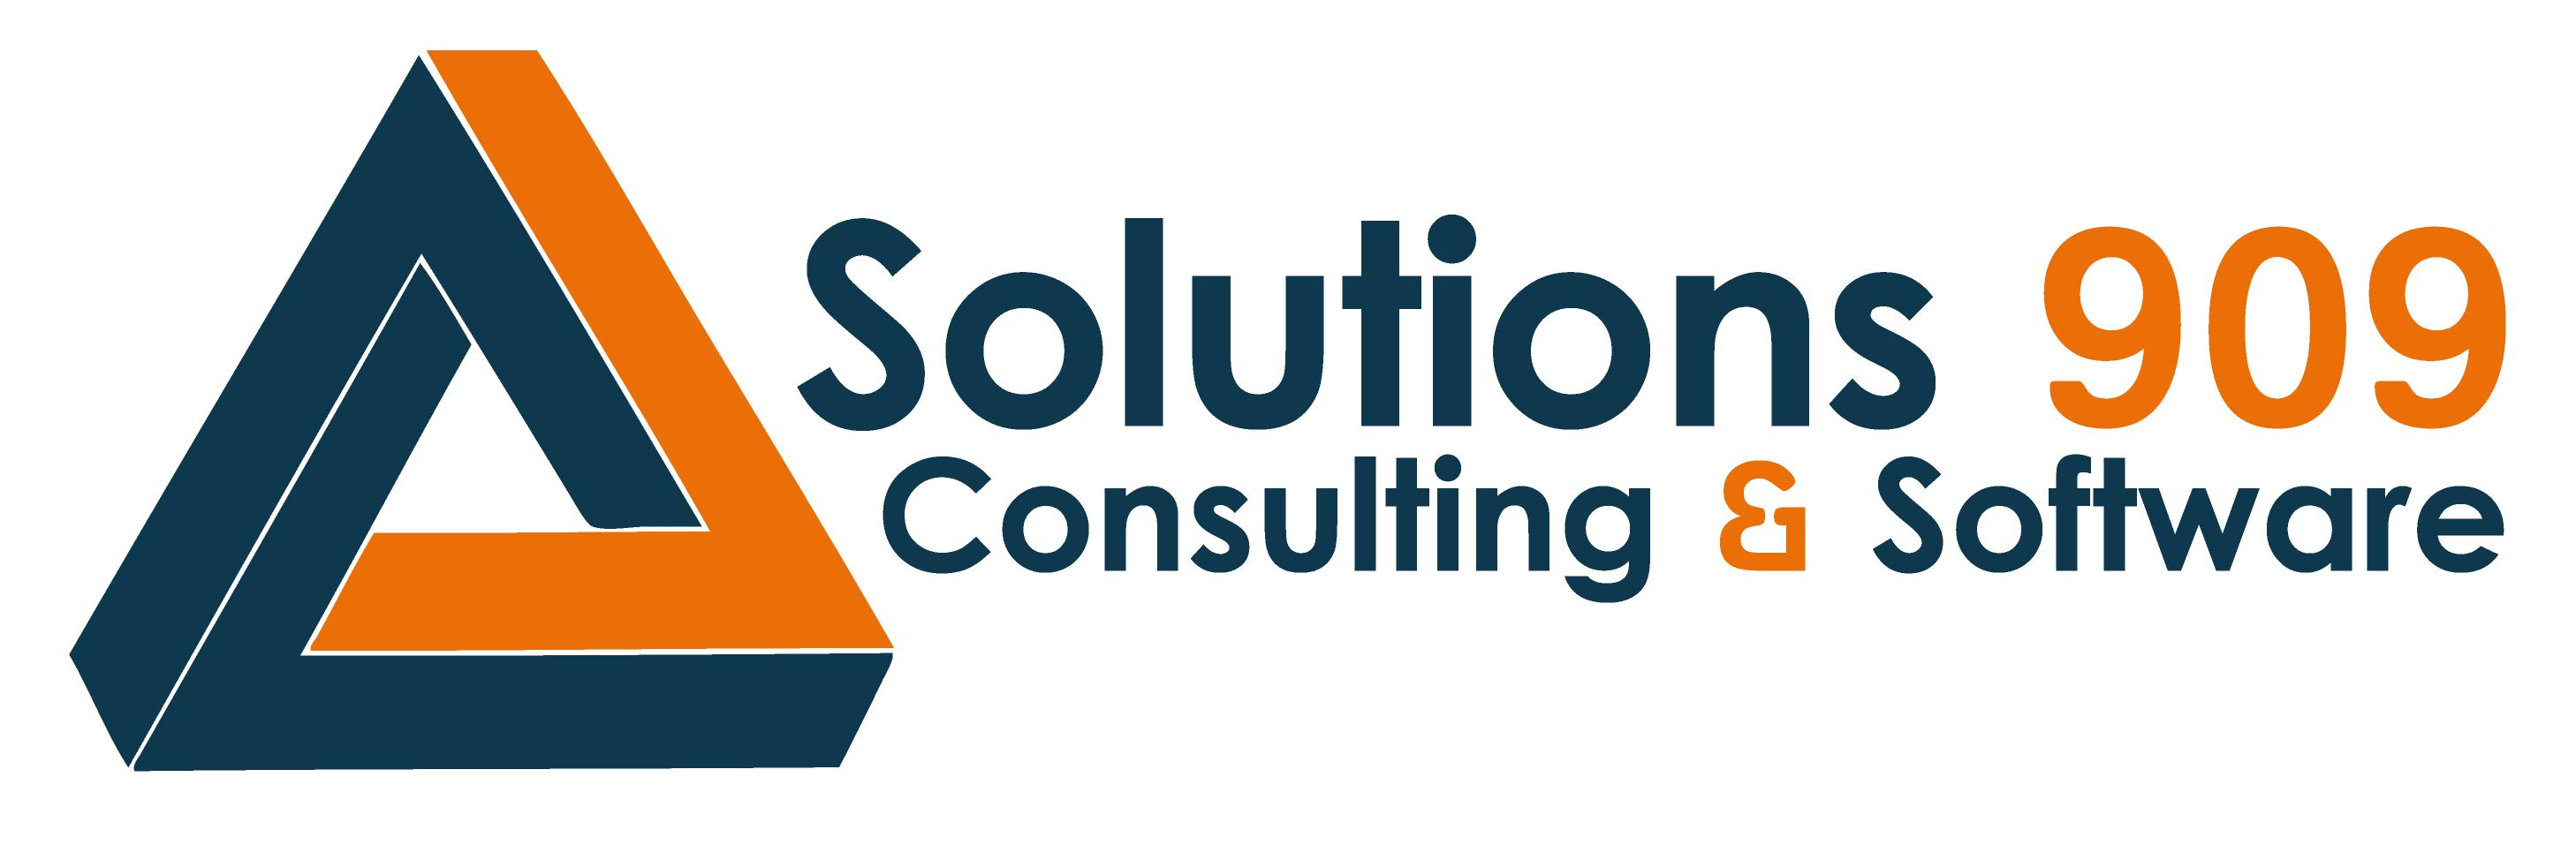 Solutions 909